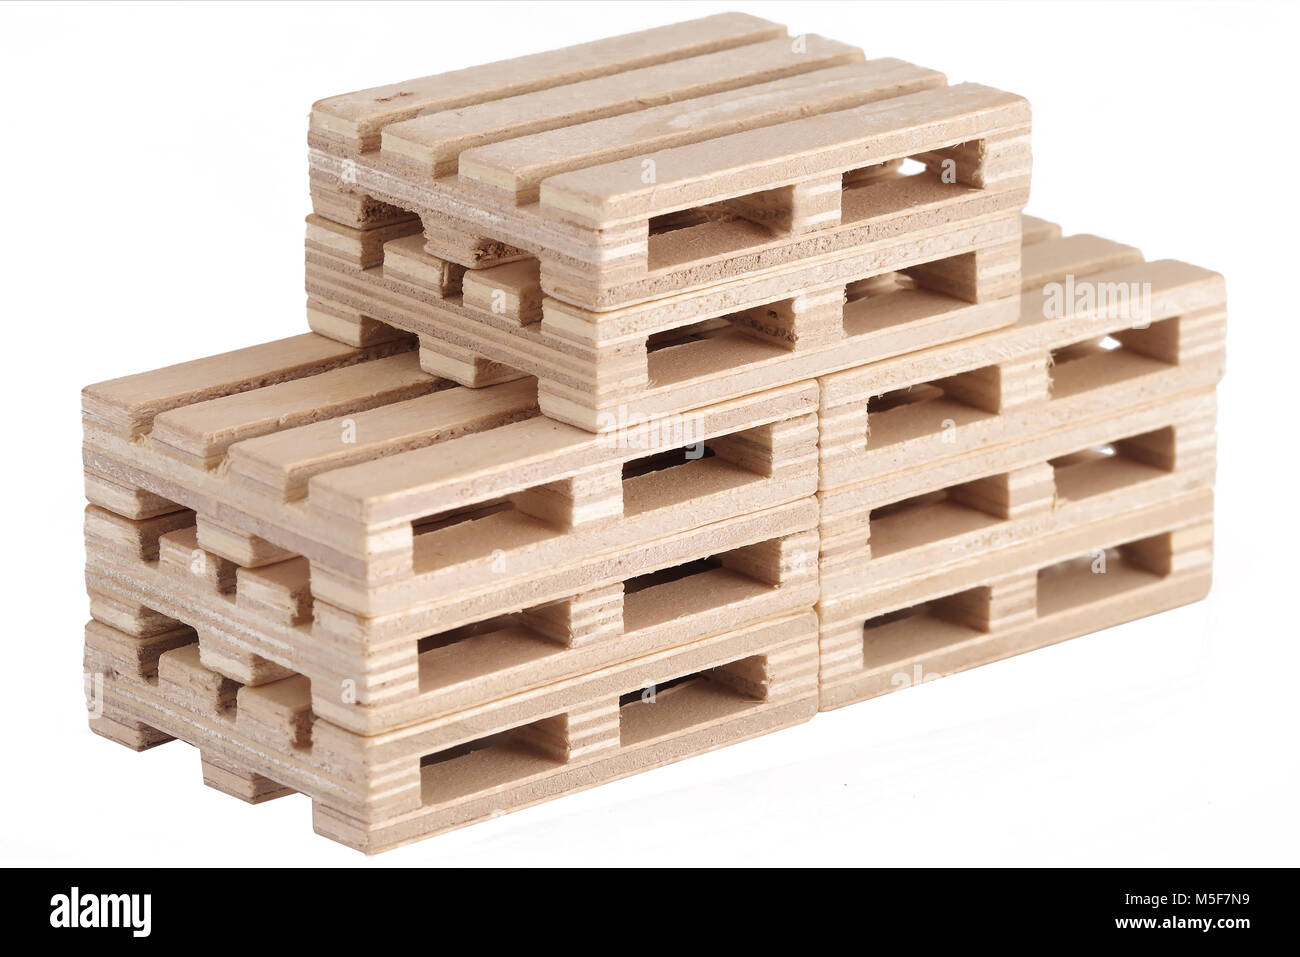 Wooden pallets on white background Stock Photo: 175512325